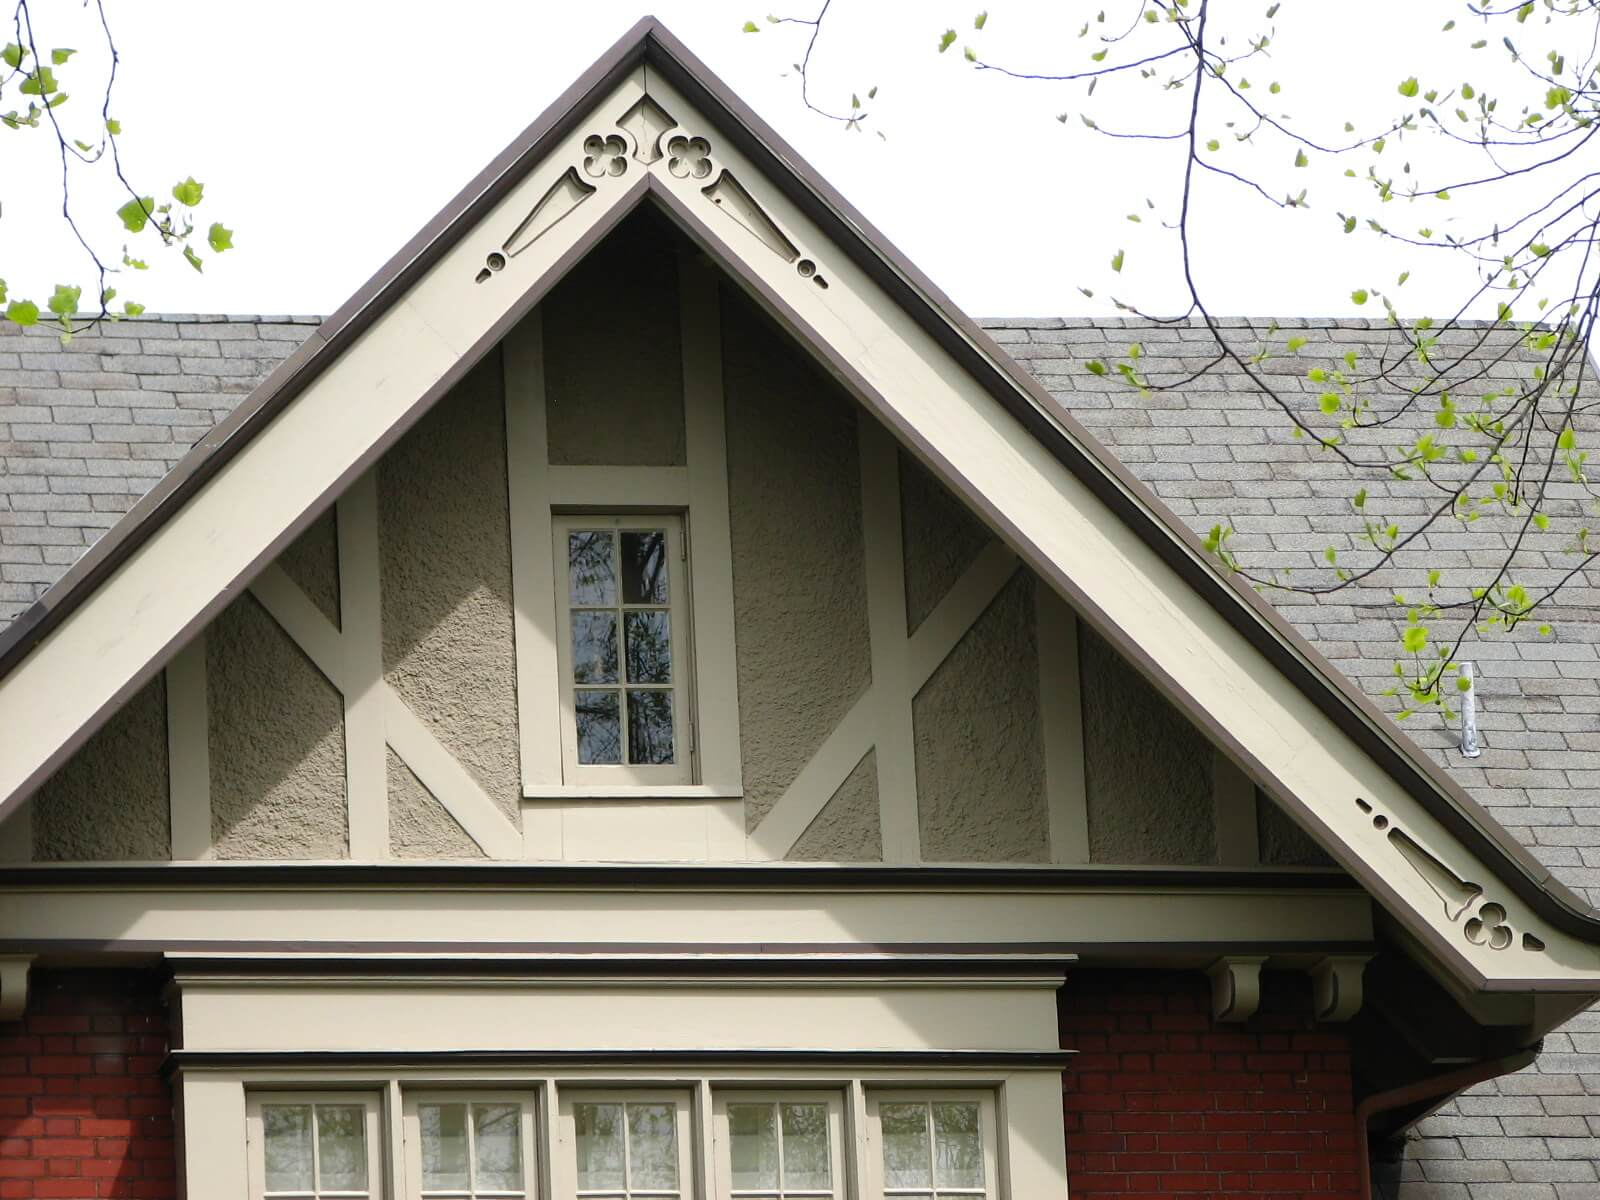 A Photo From Remarkable Roofing A Roofing Service Contractor In Knoxville, TN.   Give Remarkable Roofing A Call Today For The Best Roofing Services In Knoxville, Tennessee.}